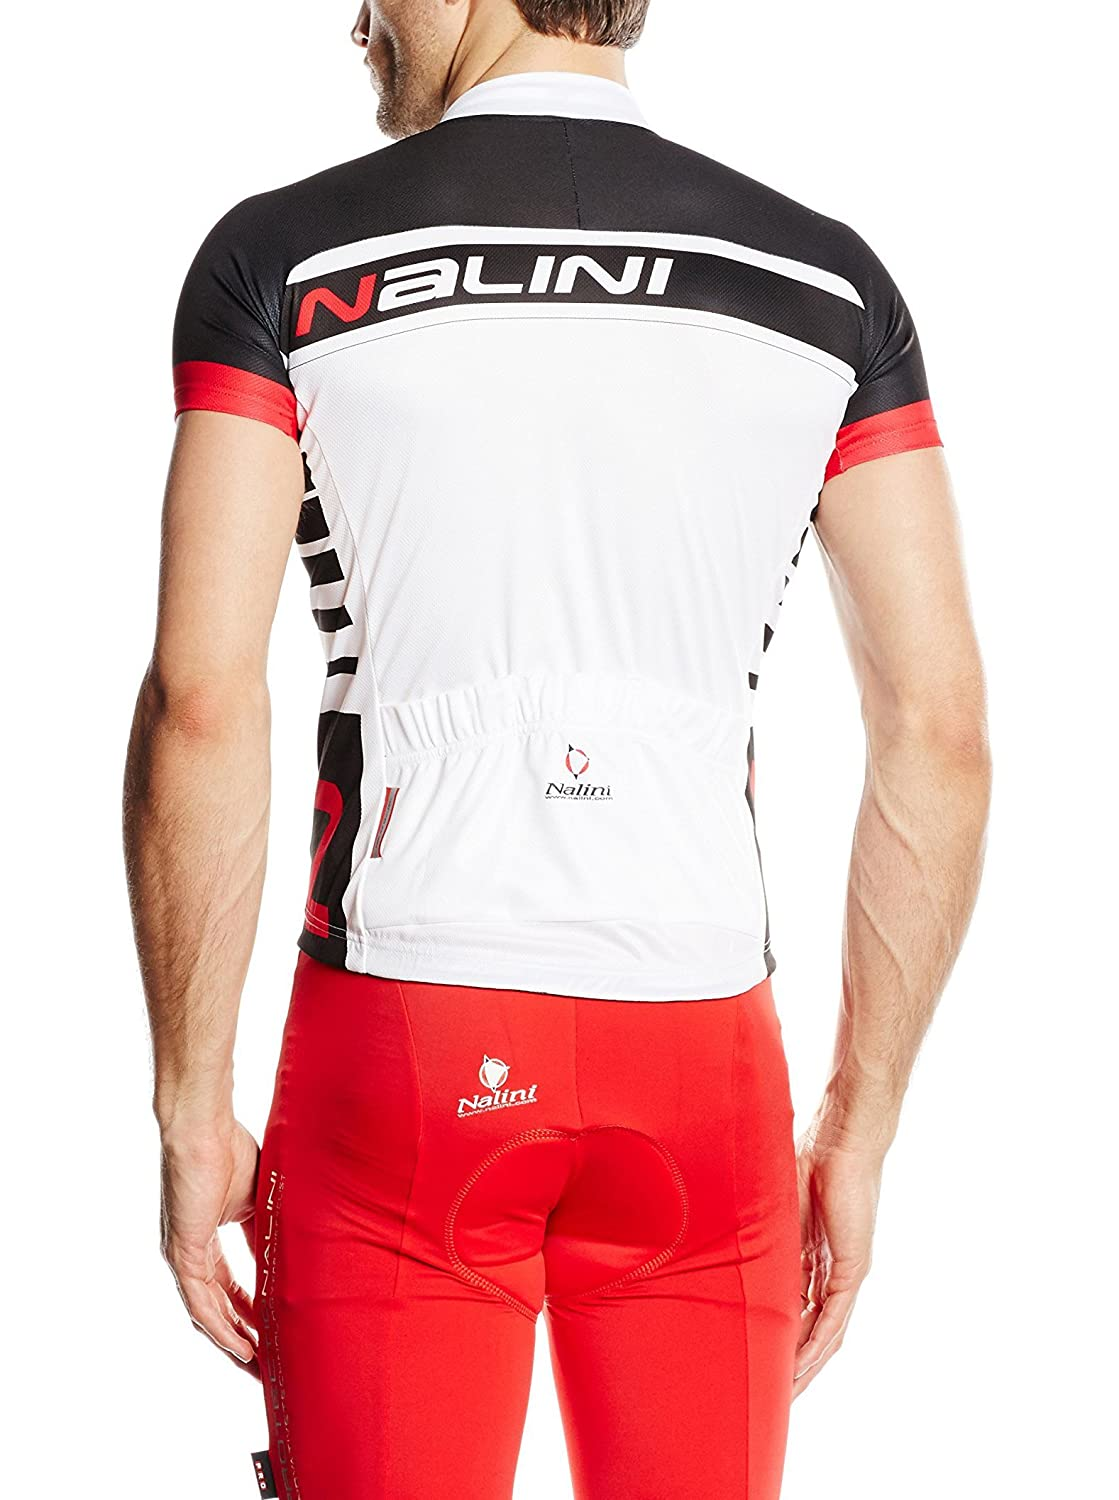 Nalini TESCIO Shirt RED S Black White  Amazon.co.uk  Clothing 31293f25b